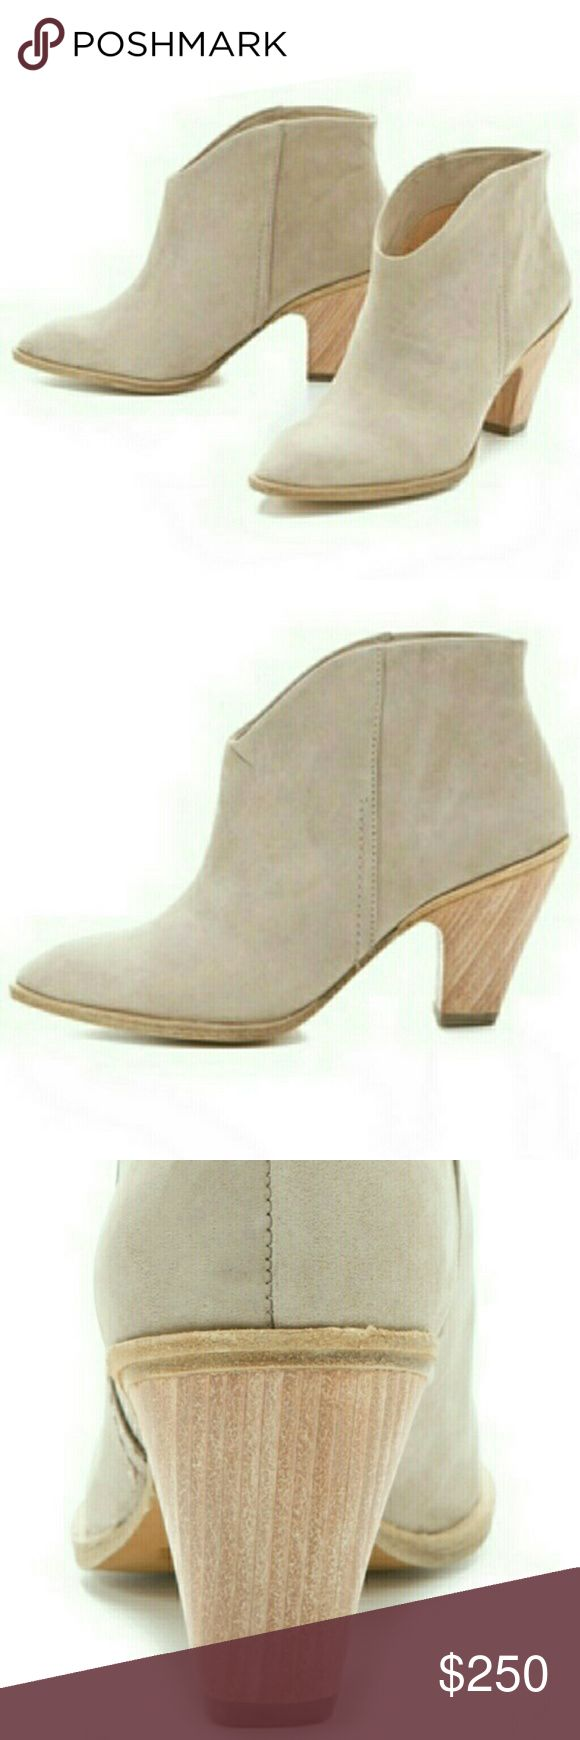 BEAUTIFUL Sigerson Morrison Belle Suede Booties New Sigerson Morrison Belle cream suede ankle booties. Flawless. These are some seriously killer boots! Size US 10. Photos available if you're interested in making them yours. Thanks! Sigerson Morrison Shoes Ankle Boots & Booties